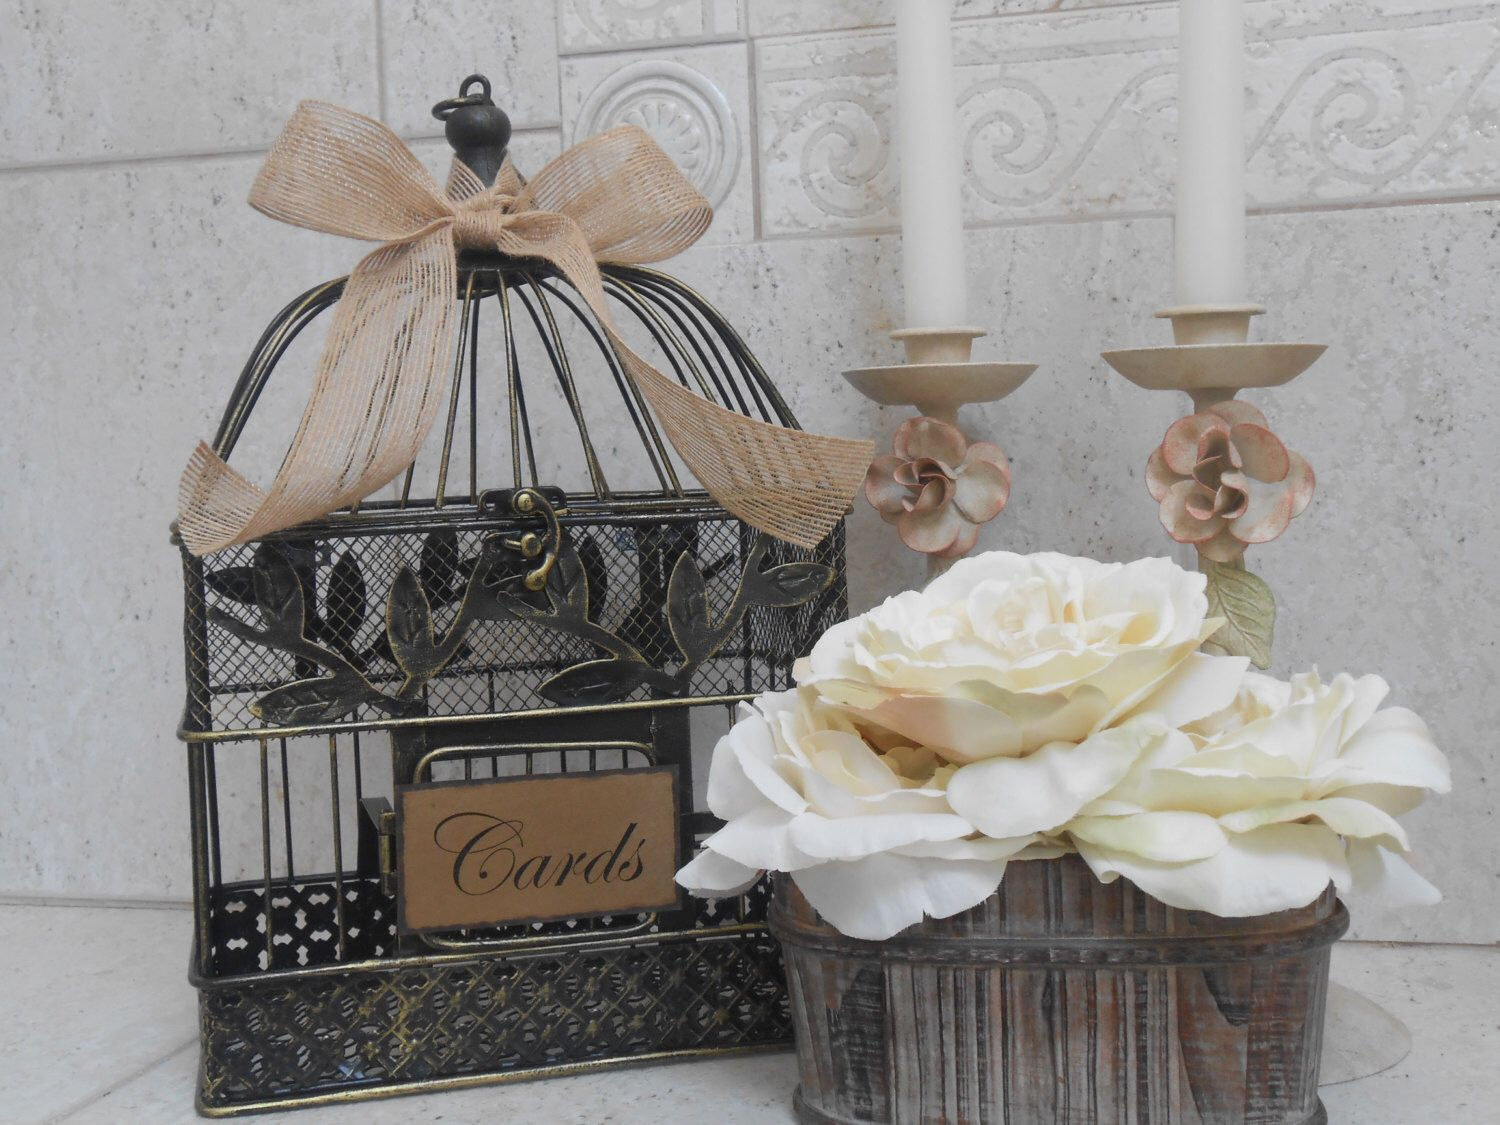 wedding gift card holders%0A Rustic Birdcage Wedding Card Holder  Birdcage Wedding Cardholder  Card  Box  Small Birdcage  Wedding Decorations  Wedding